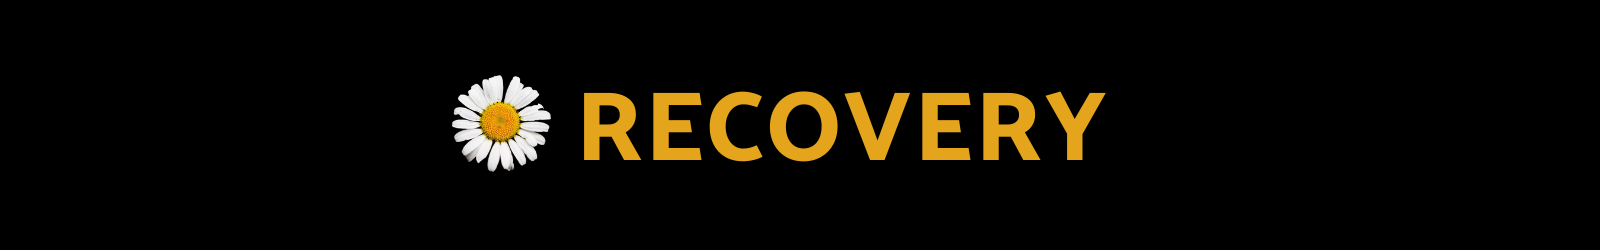 recovery from trauma